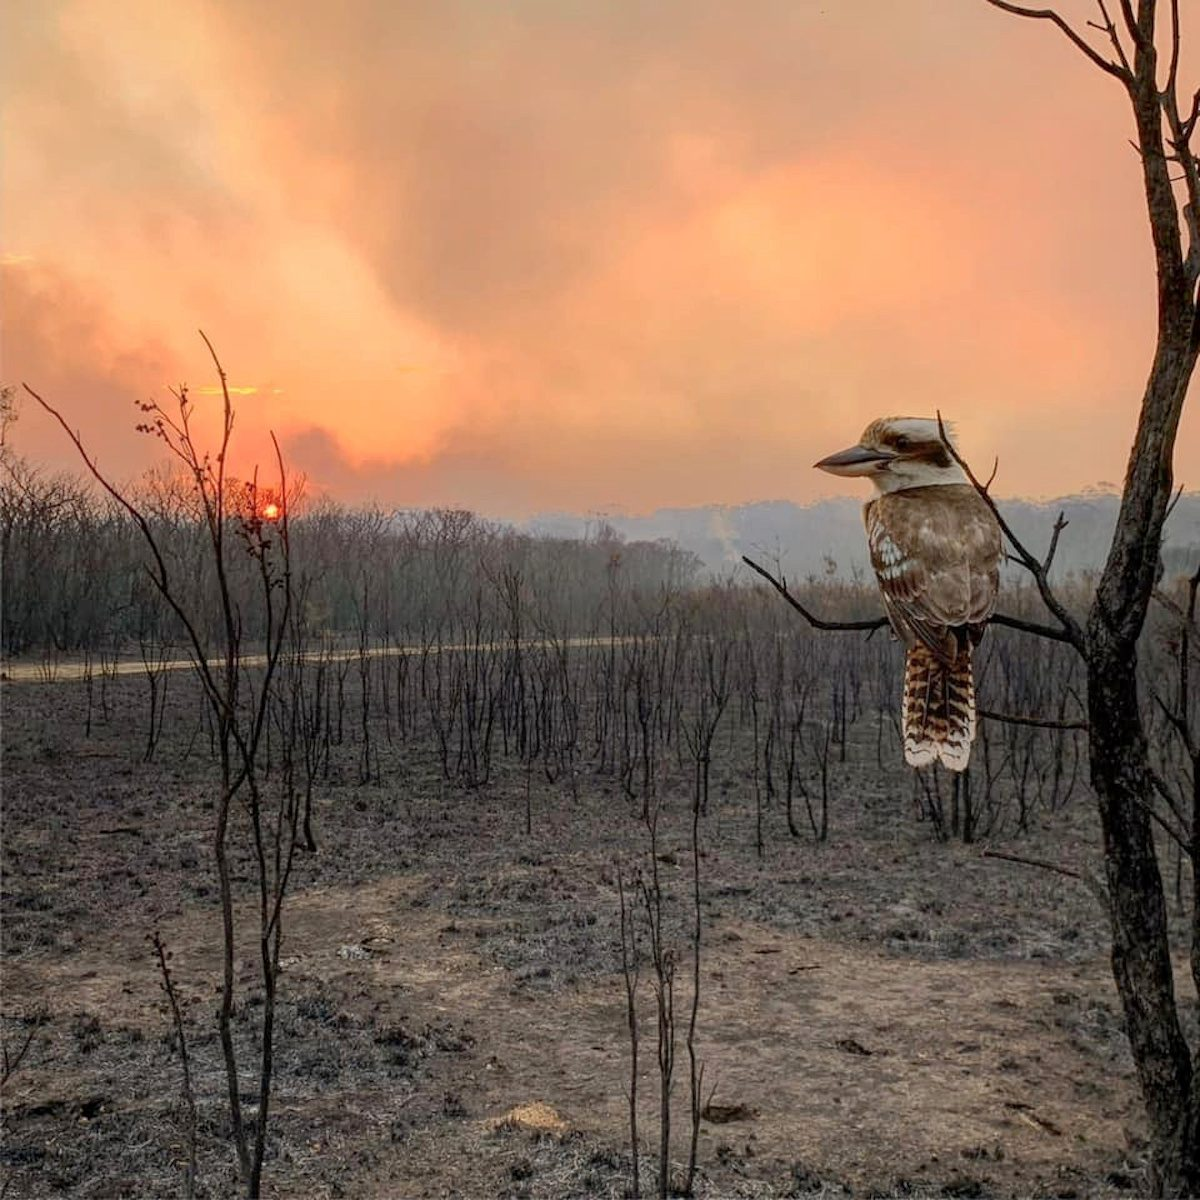 Social media image of a kookaburra perching on a burnt tree in the aftermath of a bushfire in Wallabi Point, Australia